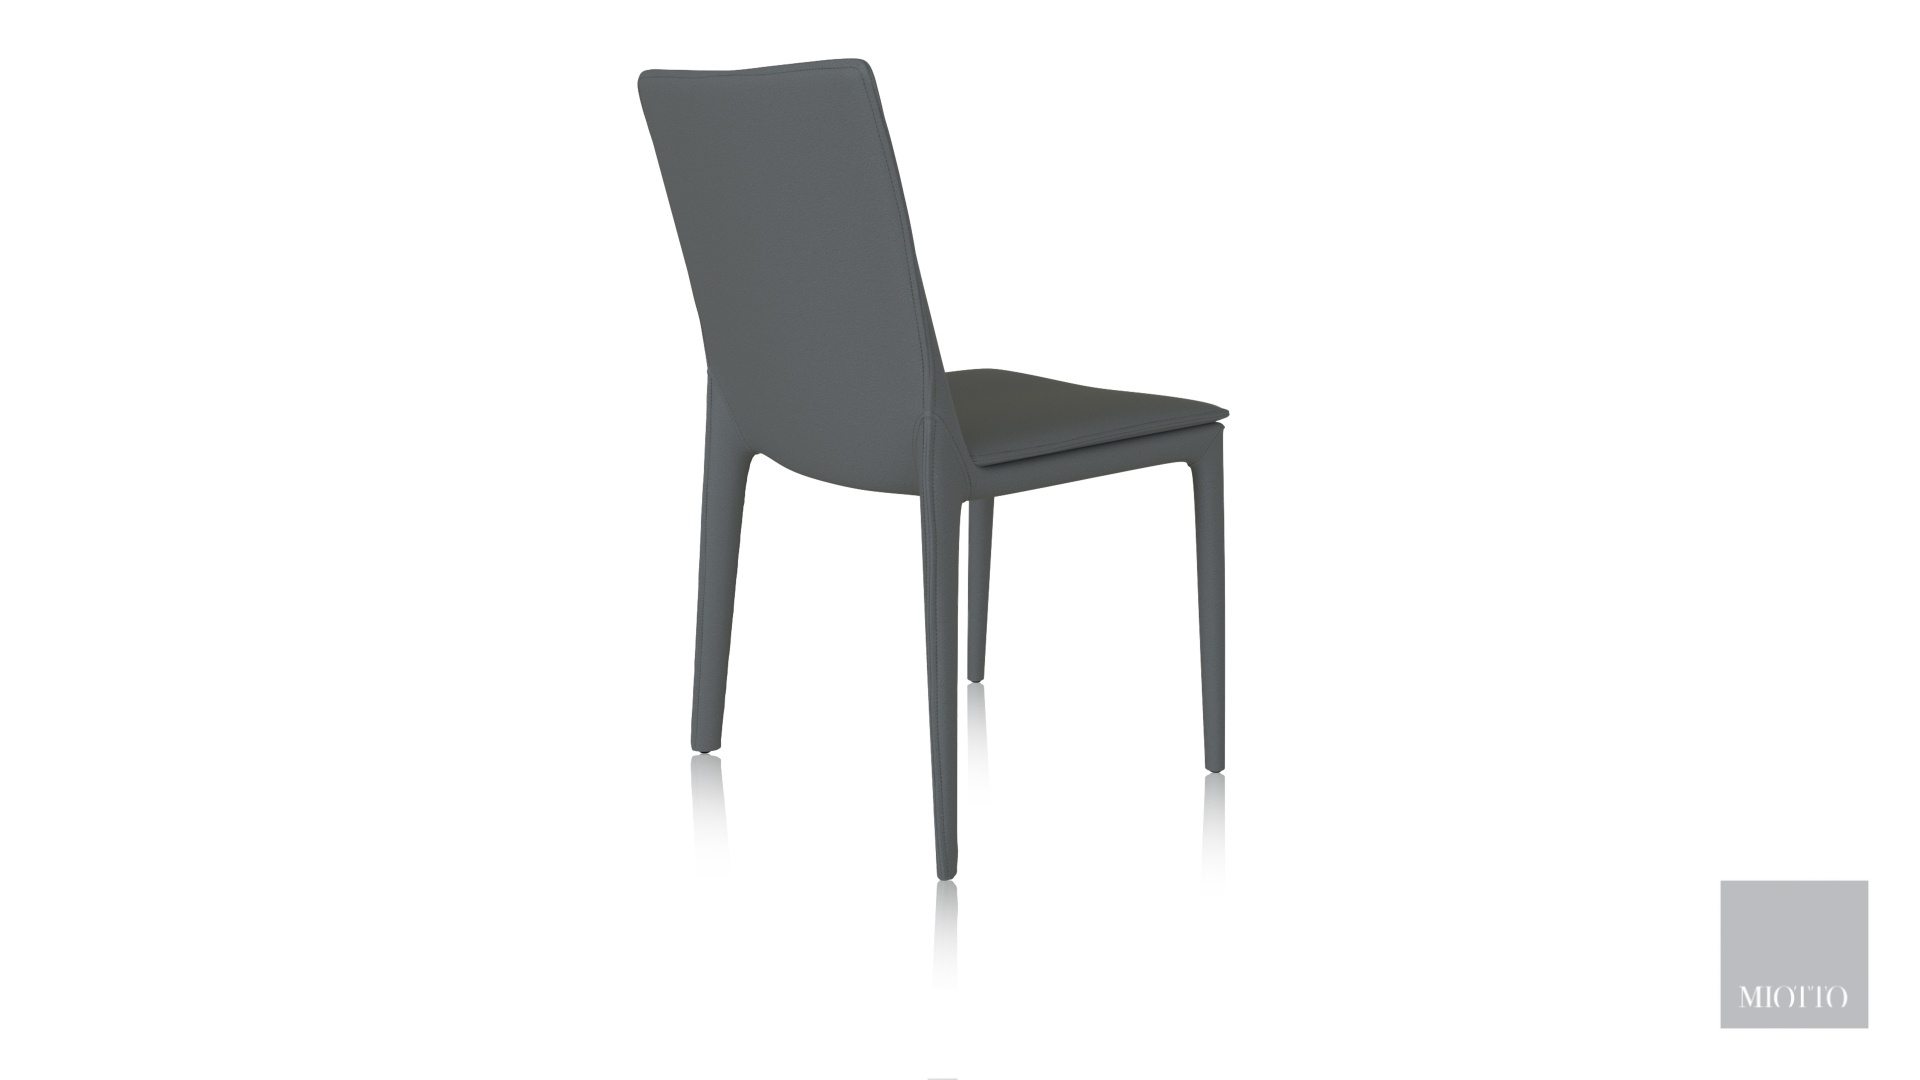 miotto_torano DC back dark grey T miotto dining chair furniture